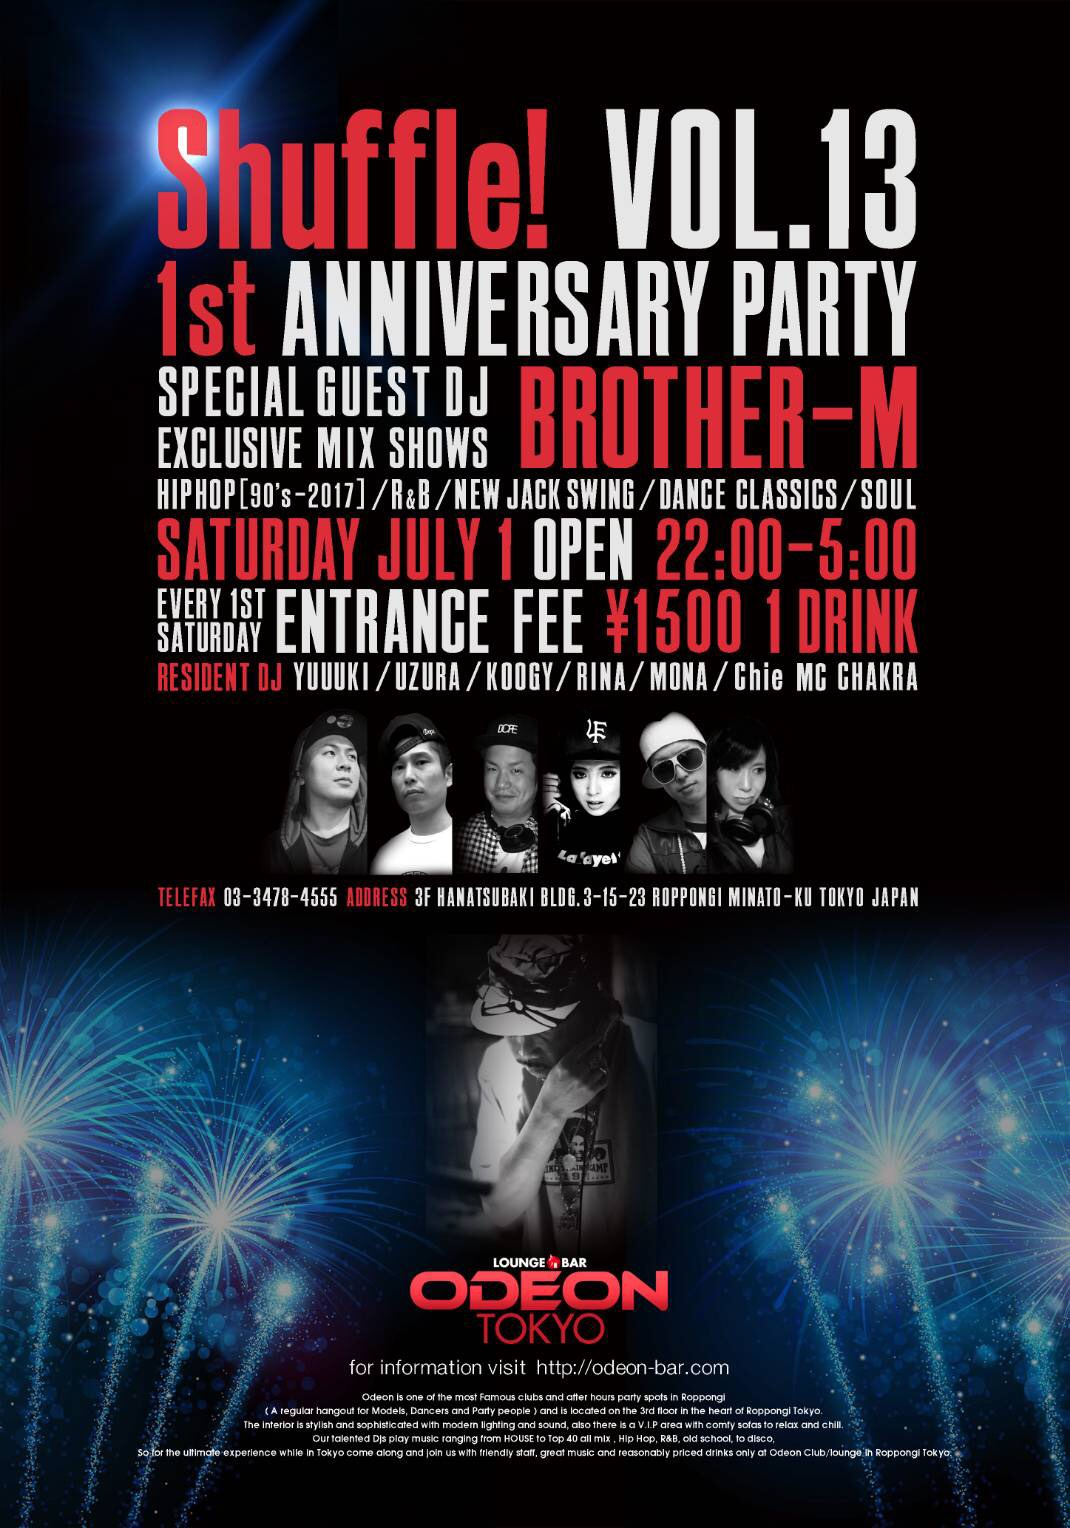 Shuffle st anniversary party odeon tokyo